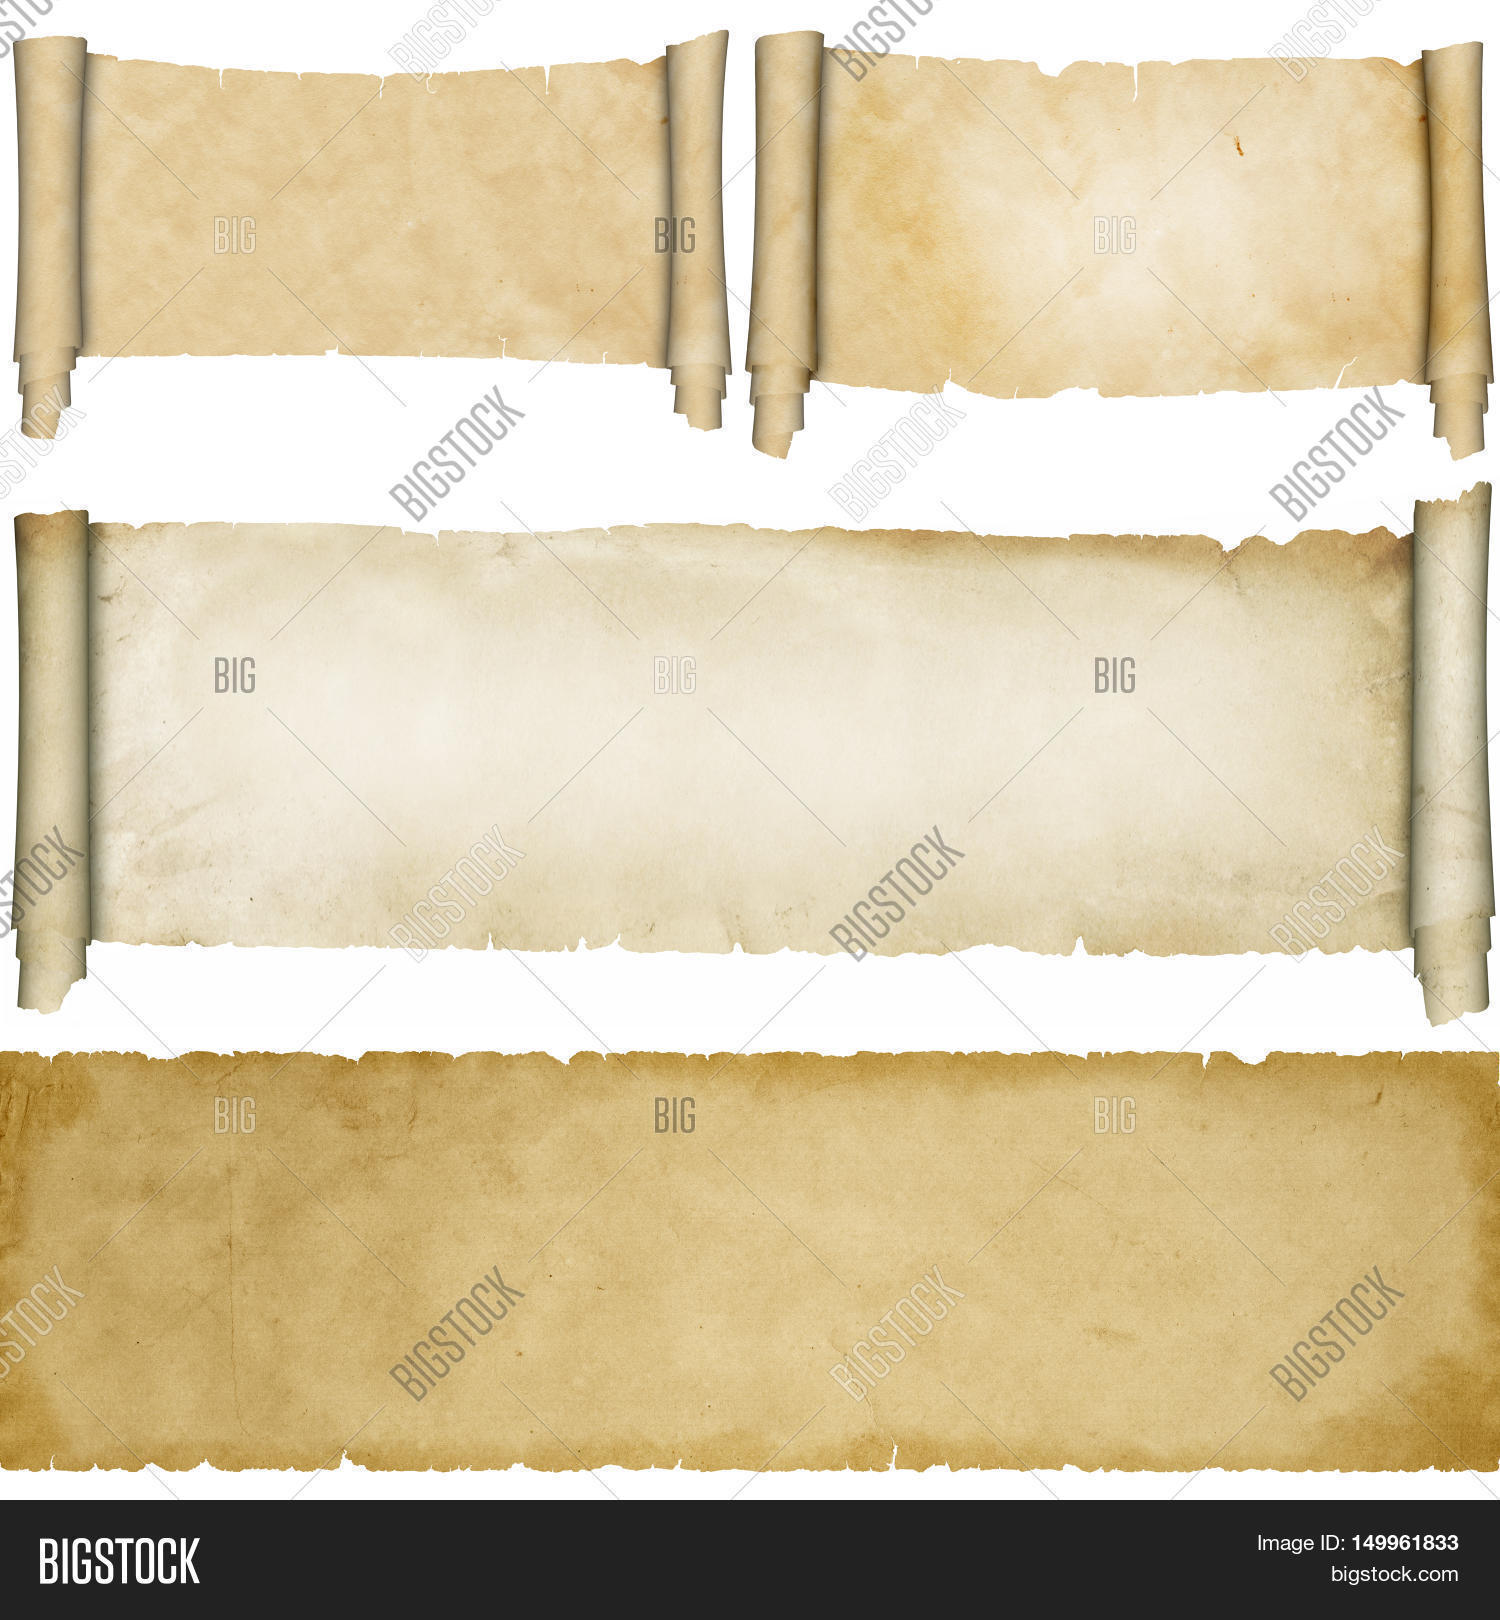 Antique Scroll Paper: Antique Scroll Image & Photo (Free Trial)